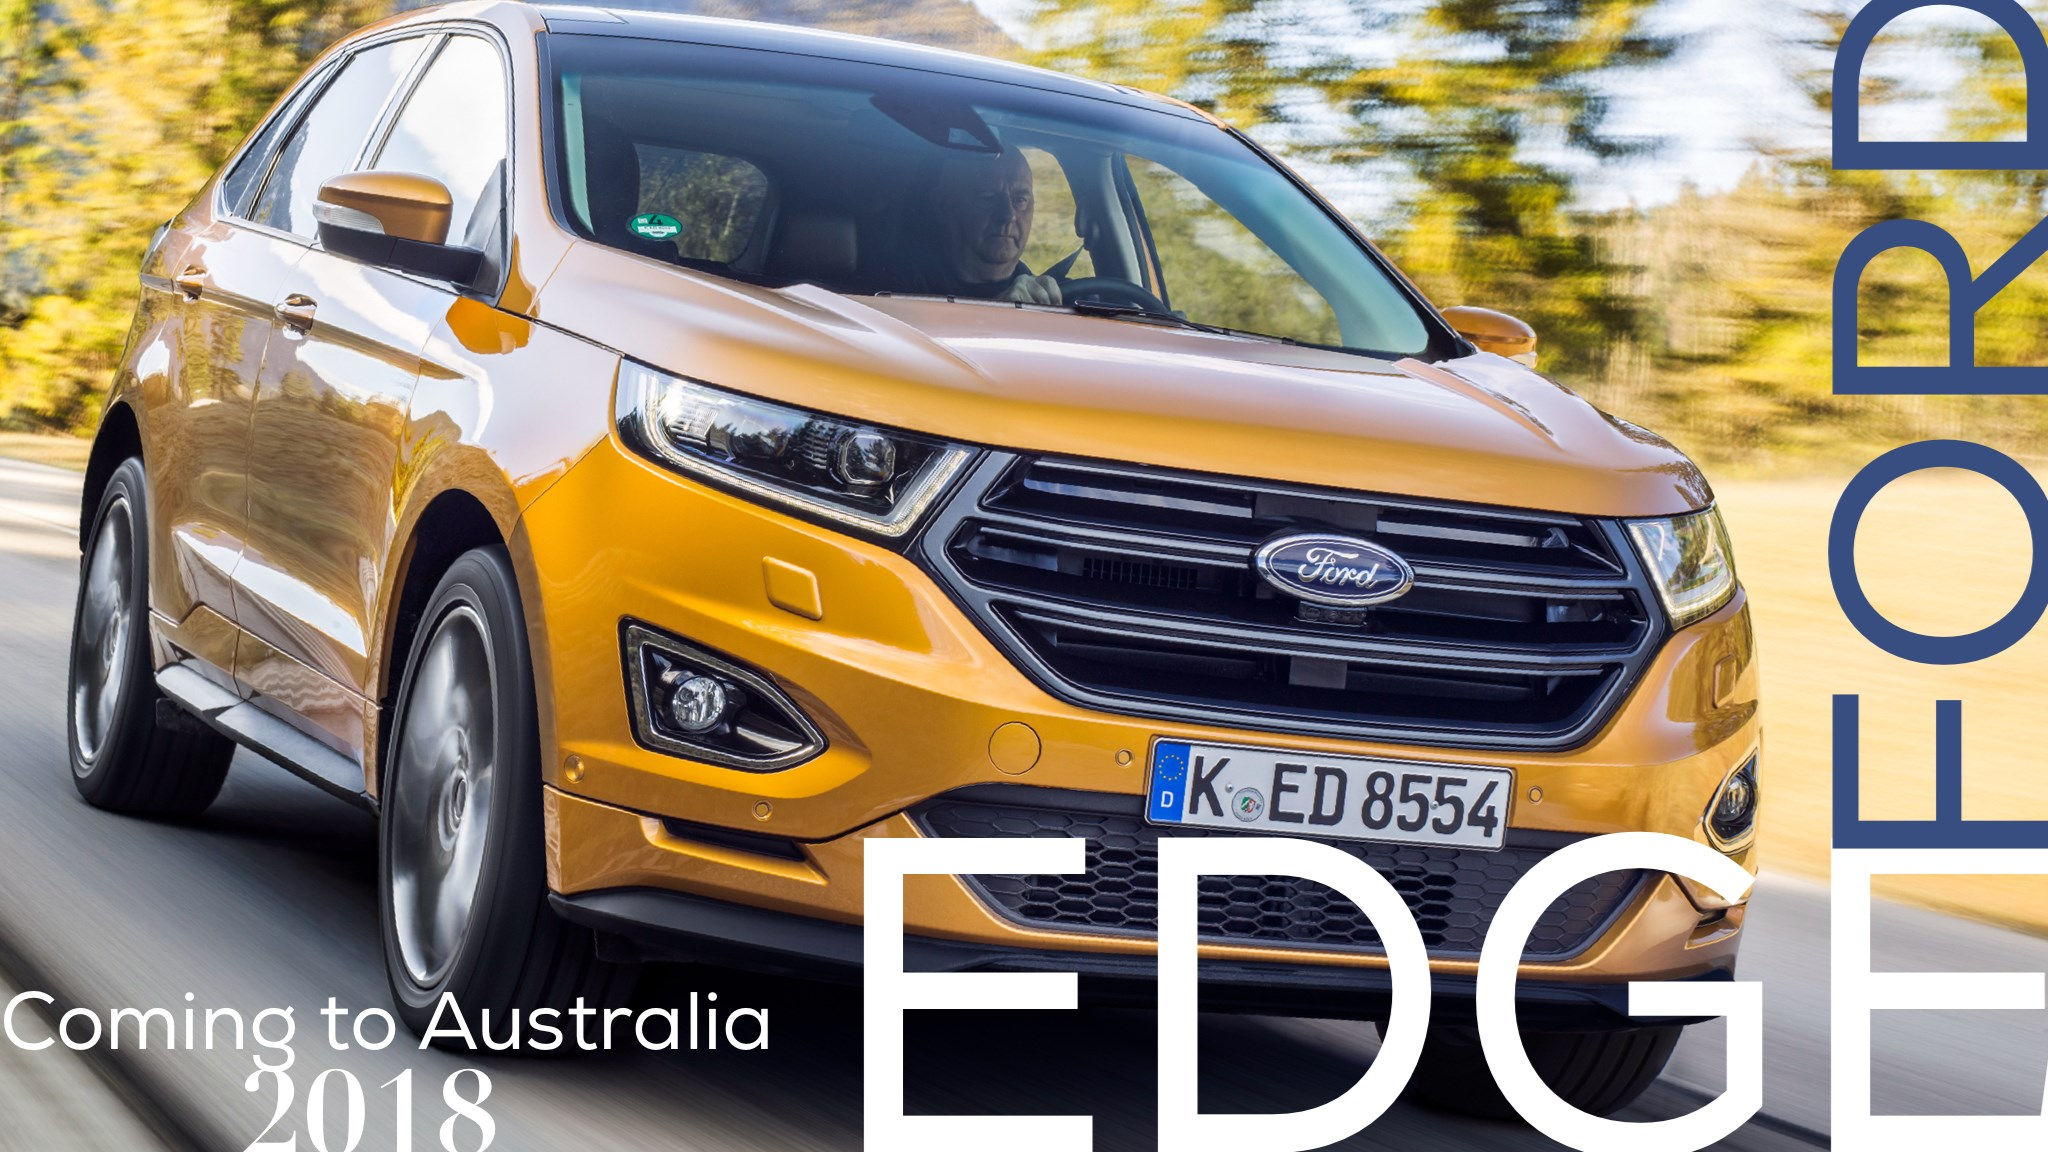 Ford Australia Confirms 2018 Edge SUV Introduction